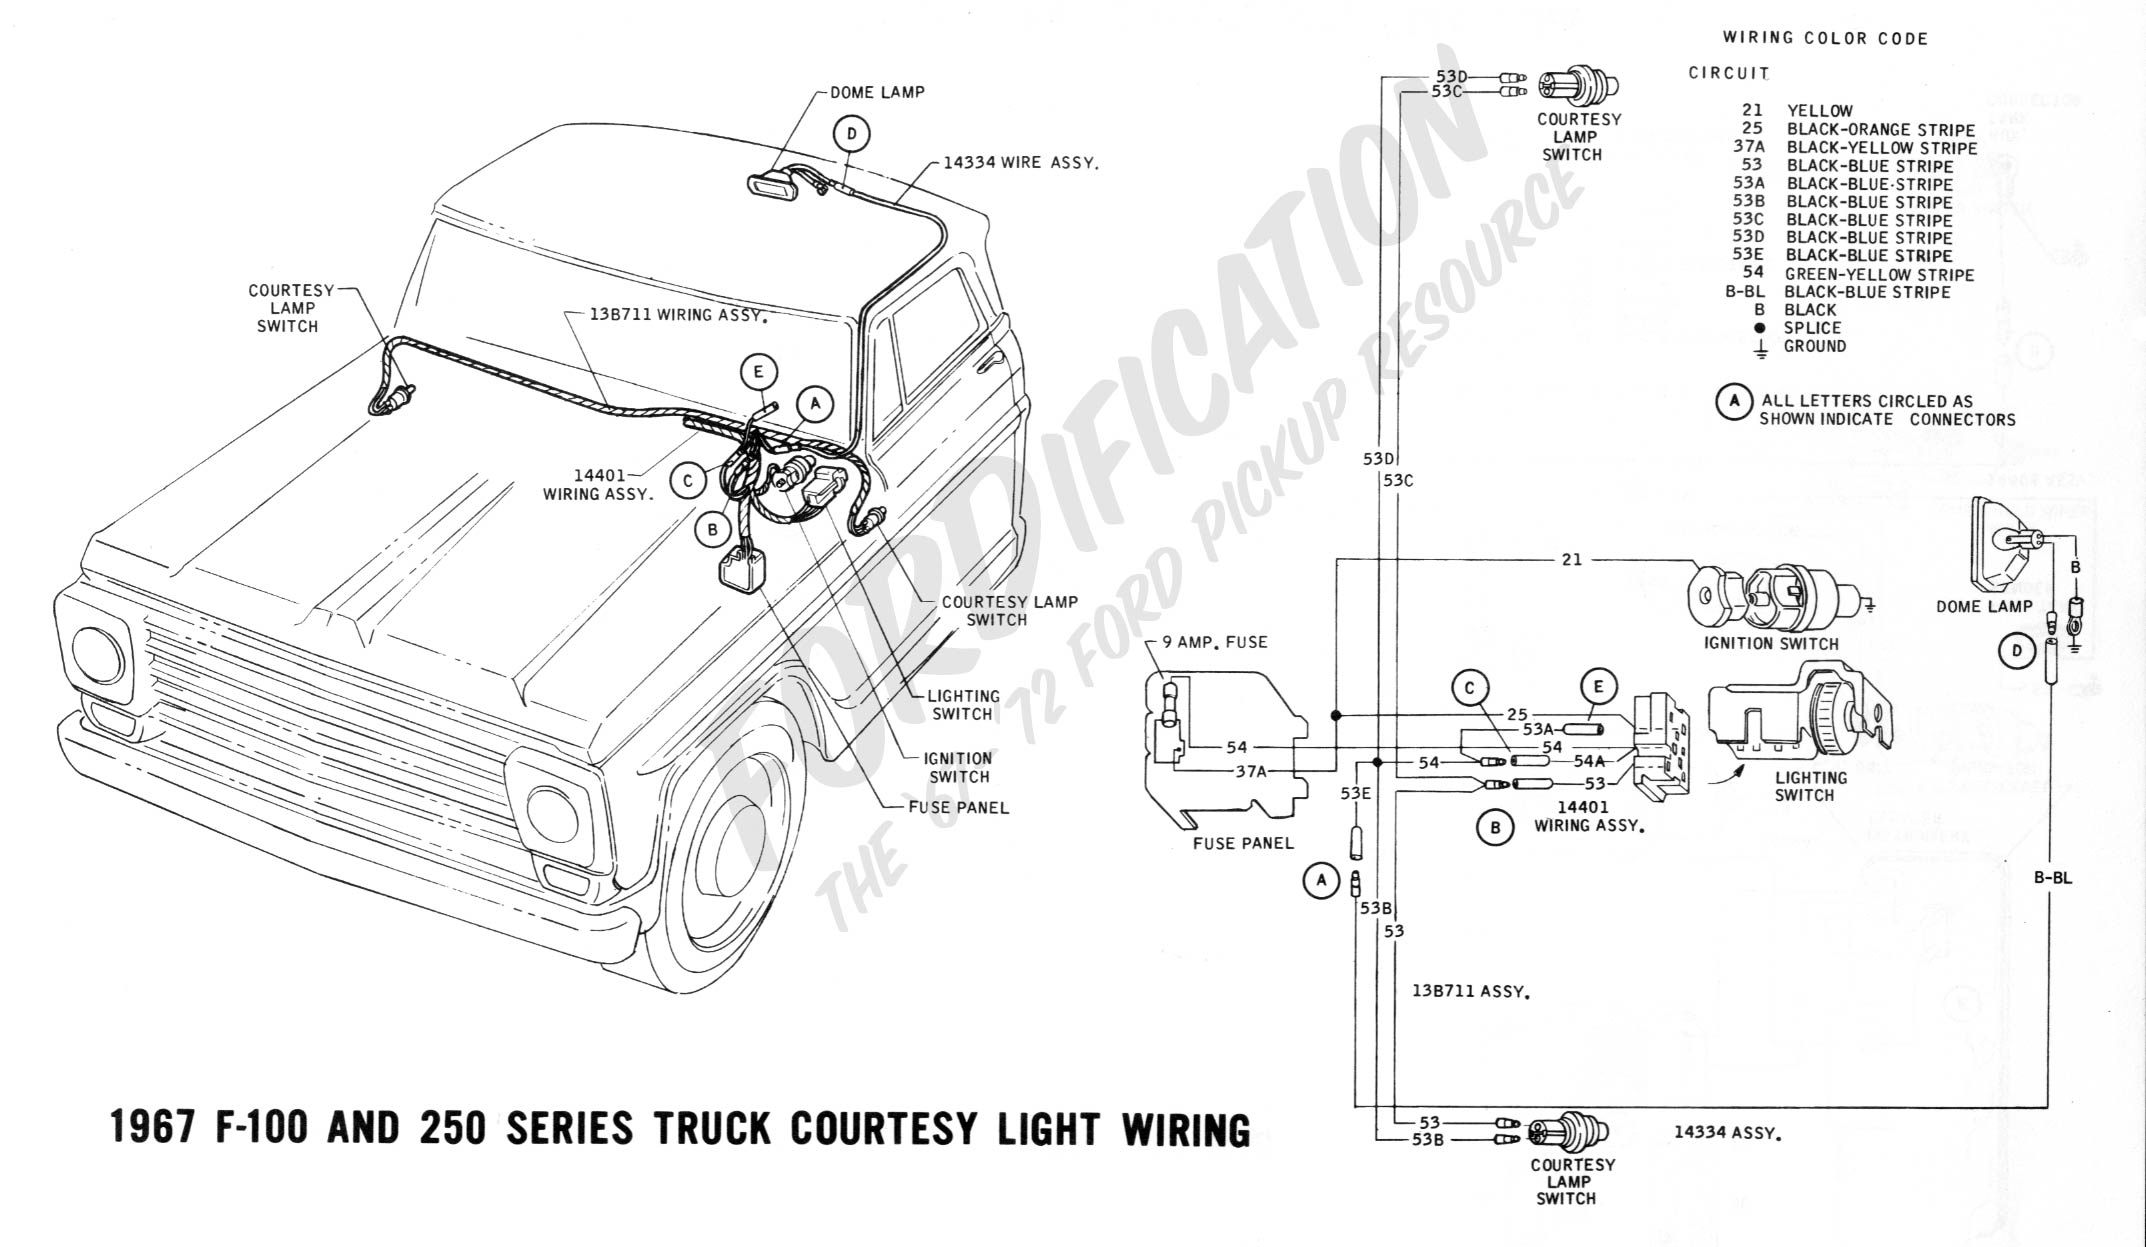 wiring 1967courtesylight ford truck technical drawings and schematics section h wiring 1977 ford f100 wiring diagram at n-0.co